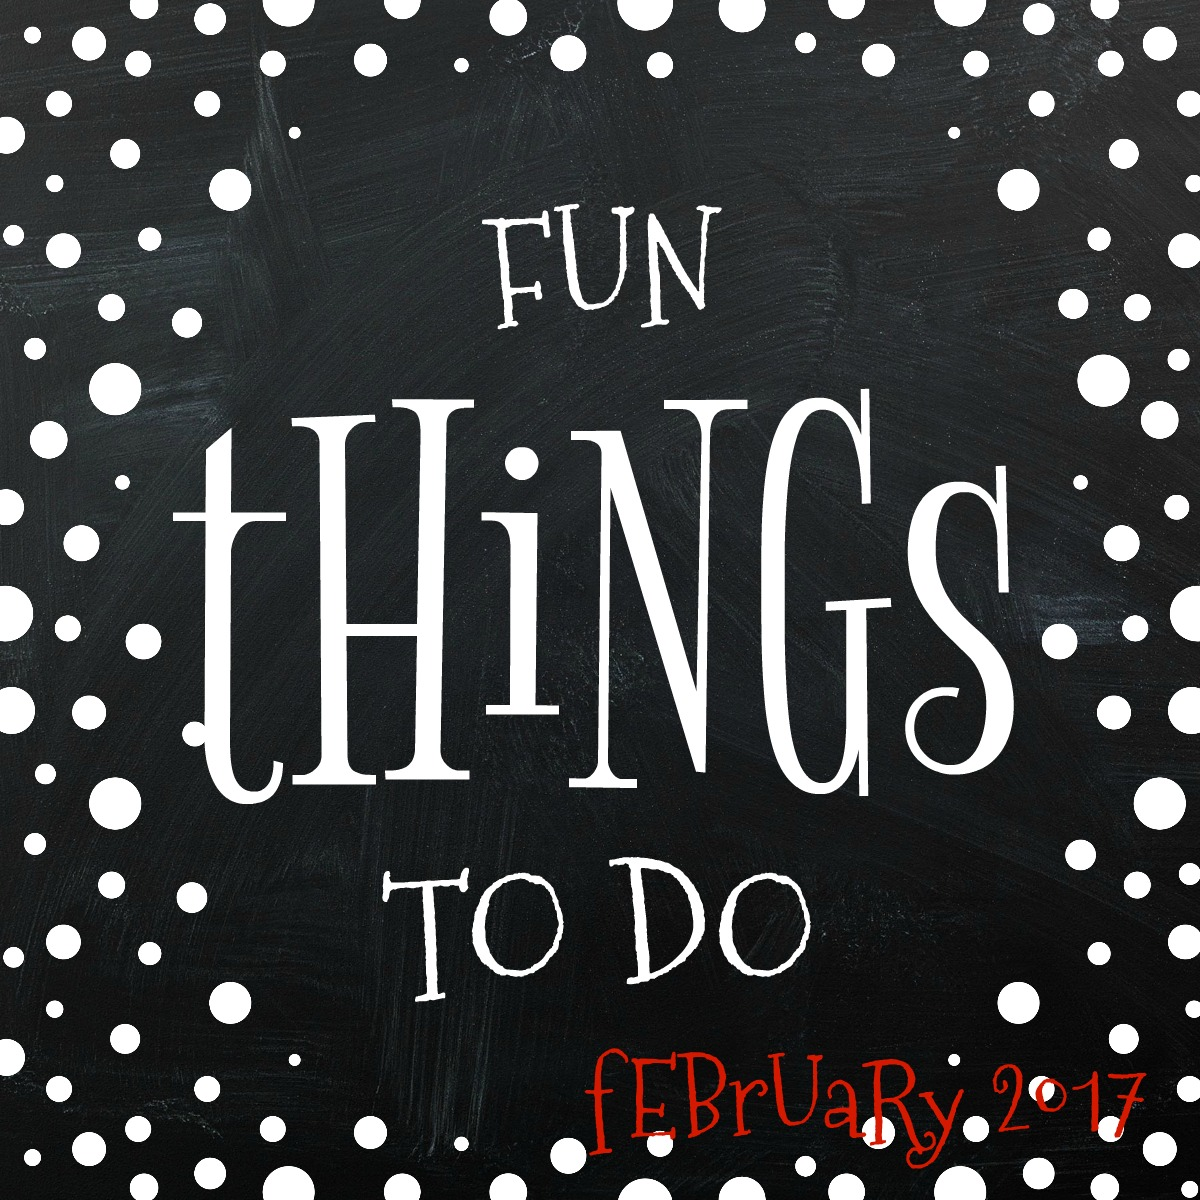 Fun Things To Do Feb 2017